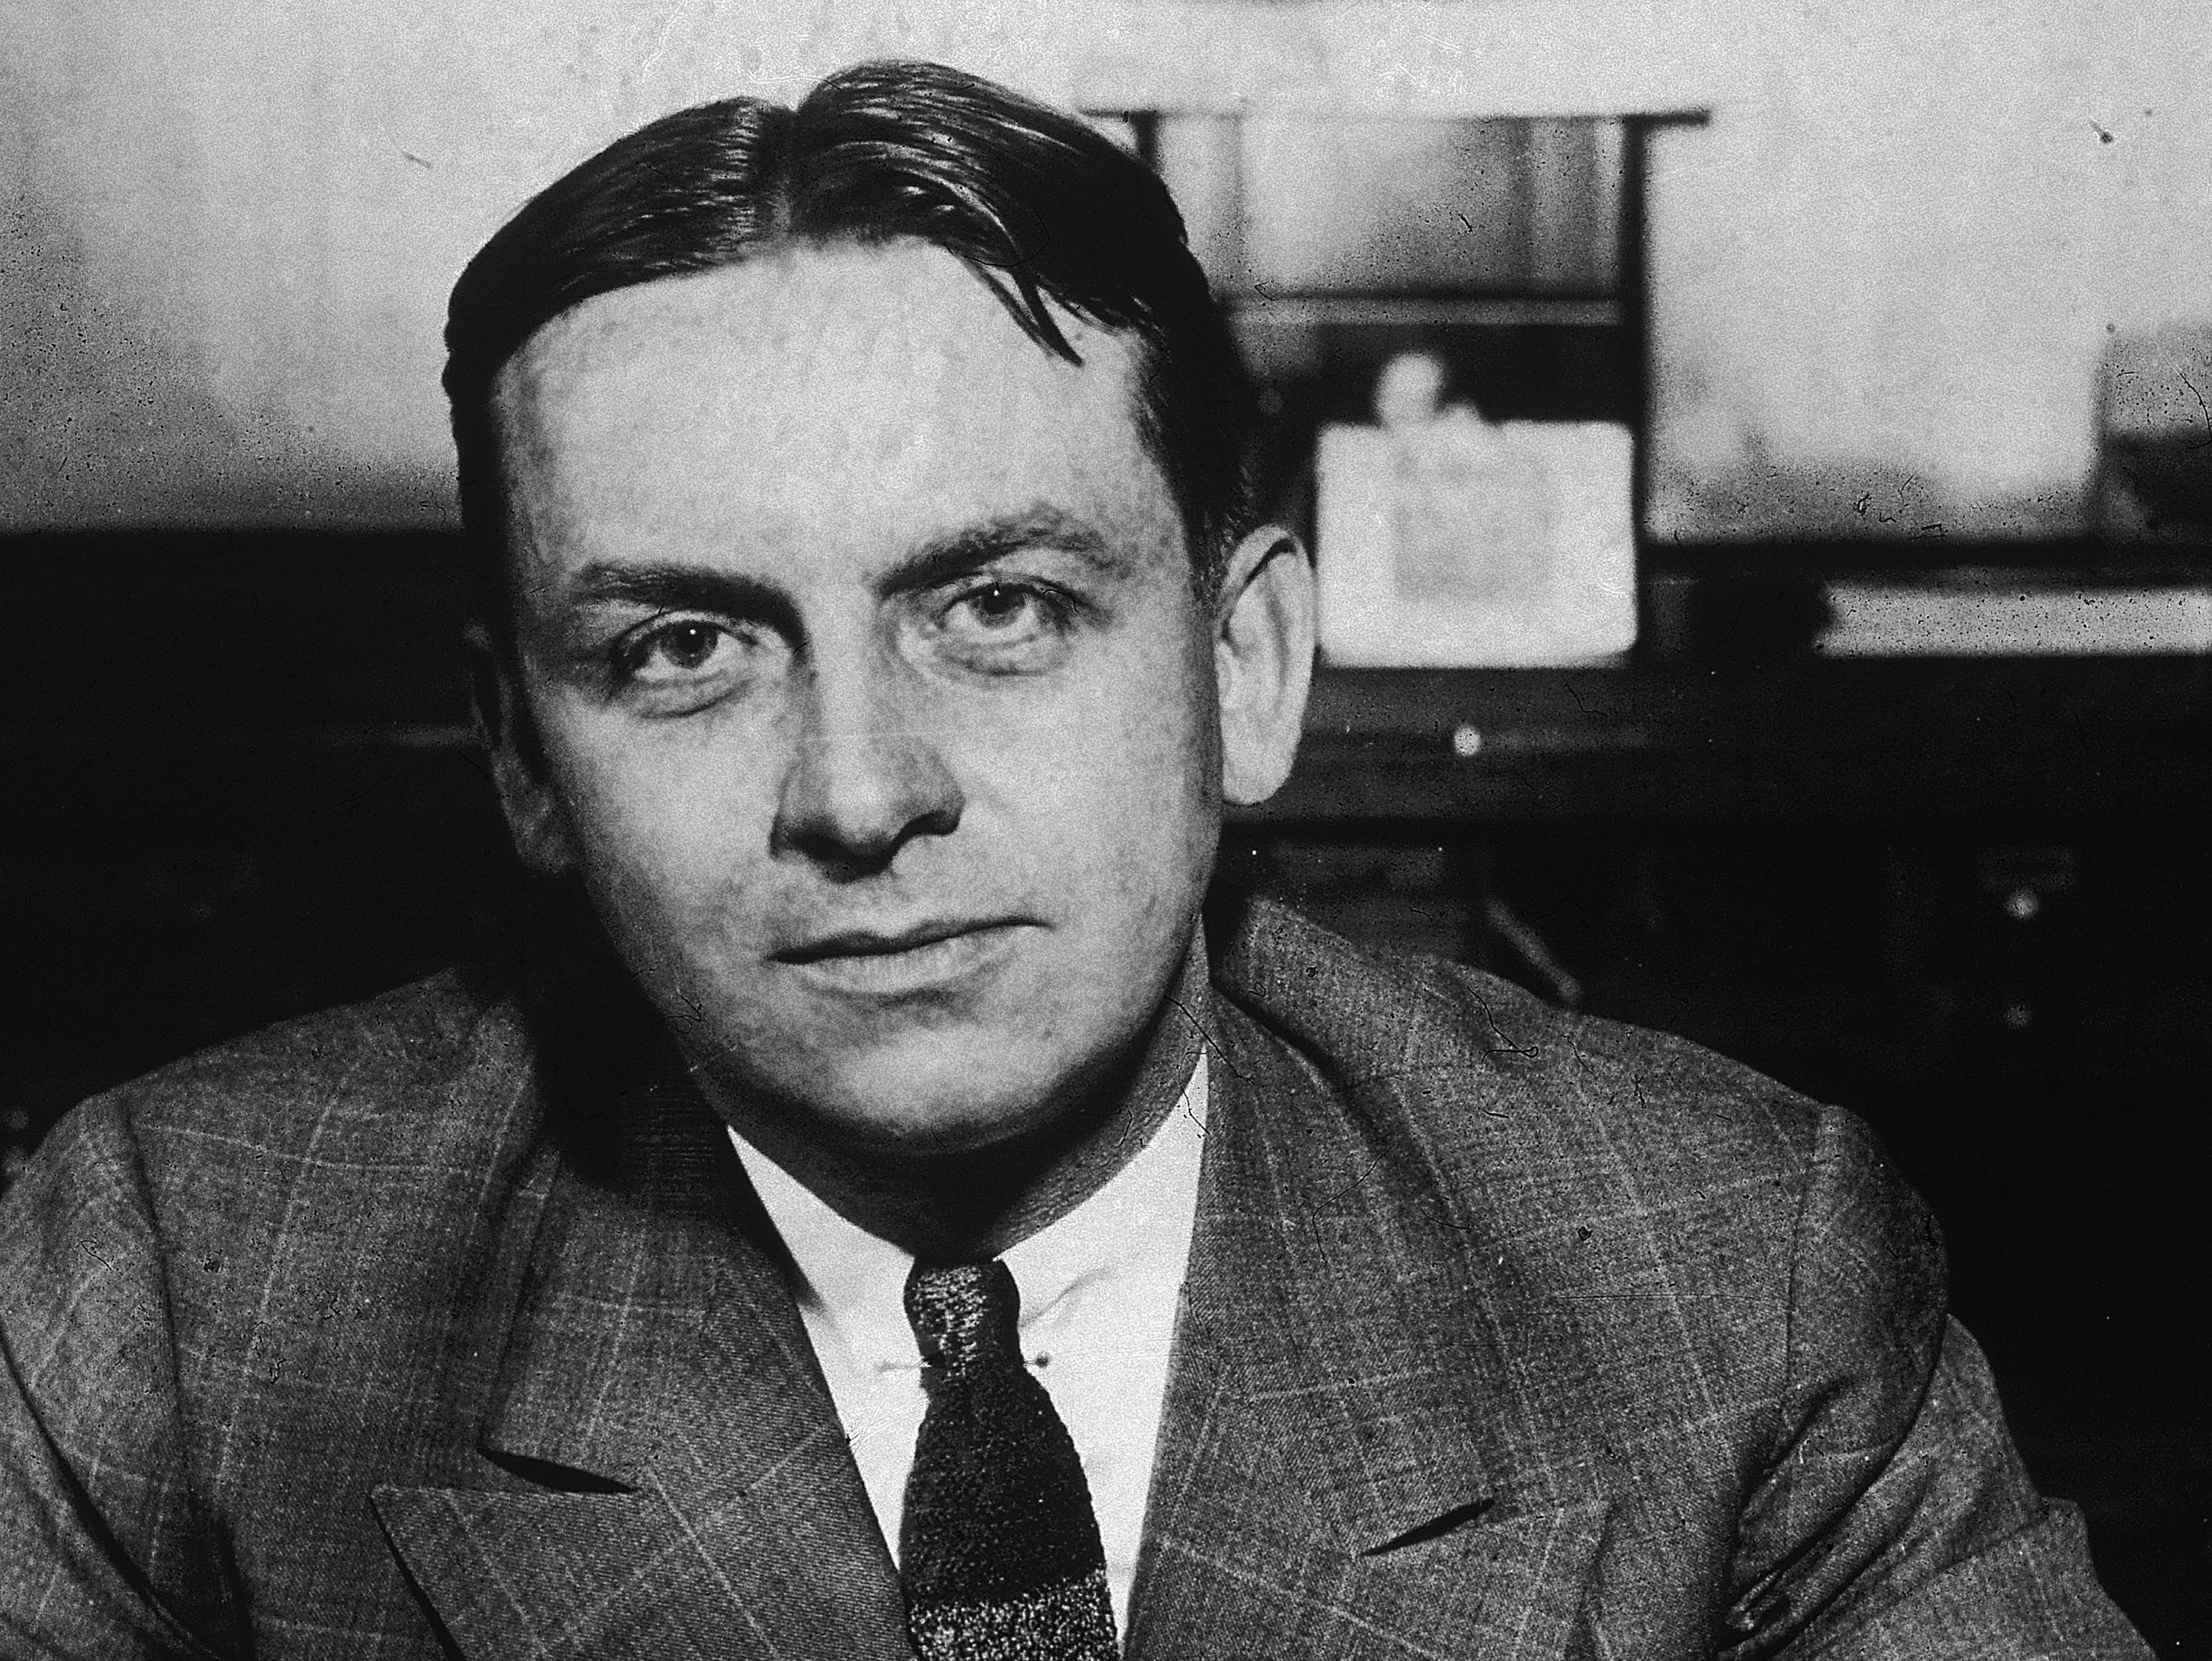 eliot ness and the untouchables Law officer he was the federal bureau of ivestigations lawman who brought gangster al capone to justice born in chicago, illinois, he was educated at the university of chicago, graduating in 1925 with a degree in business and law.